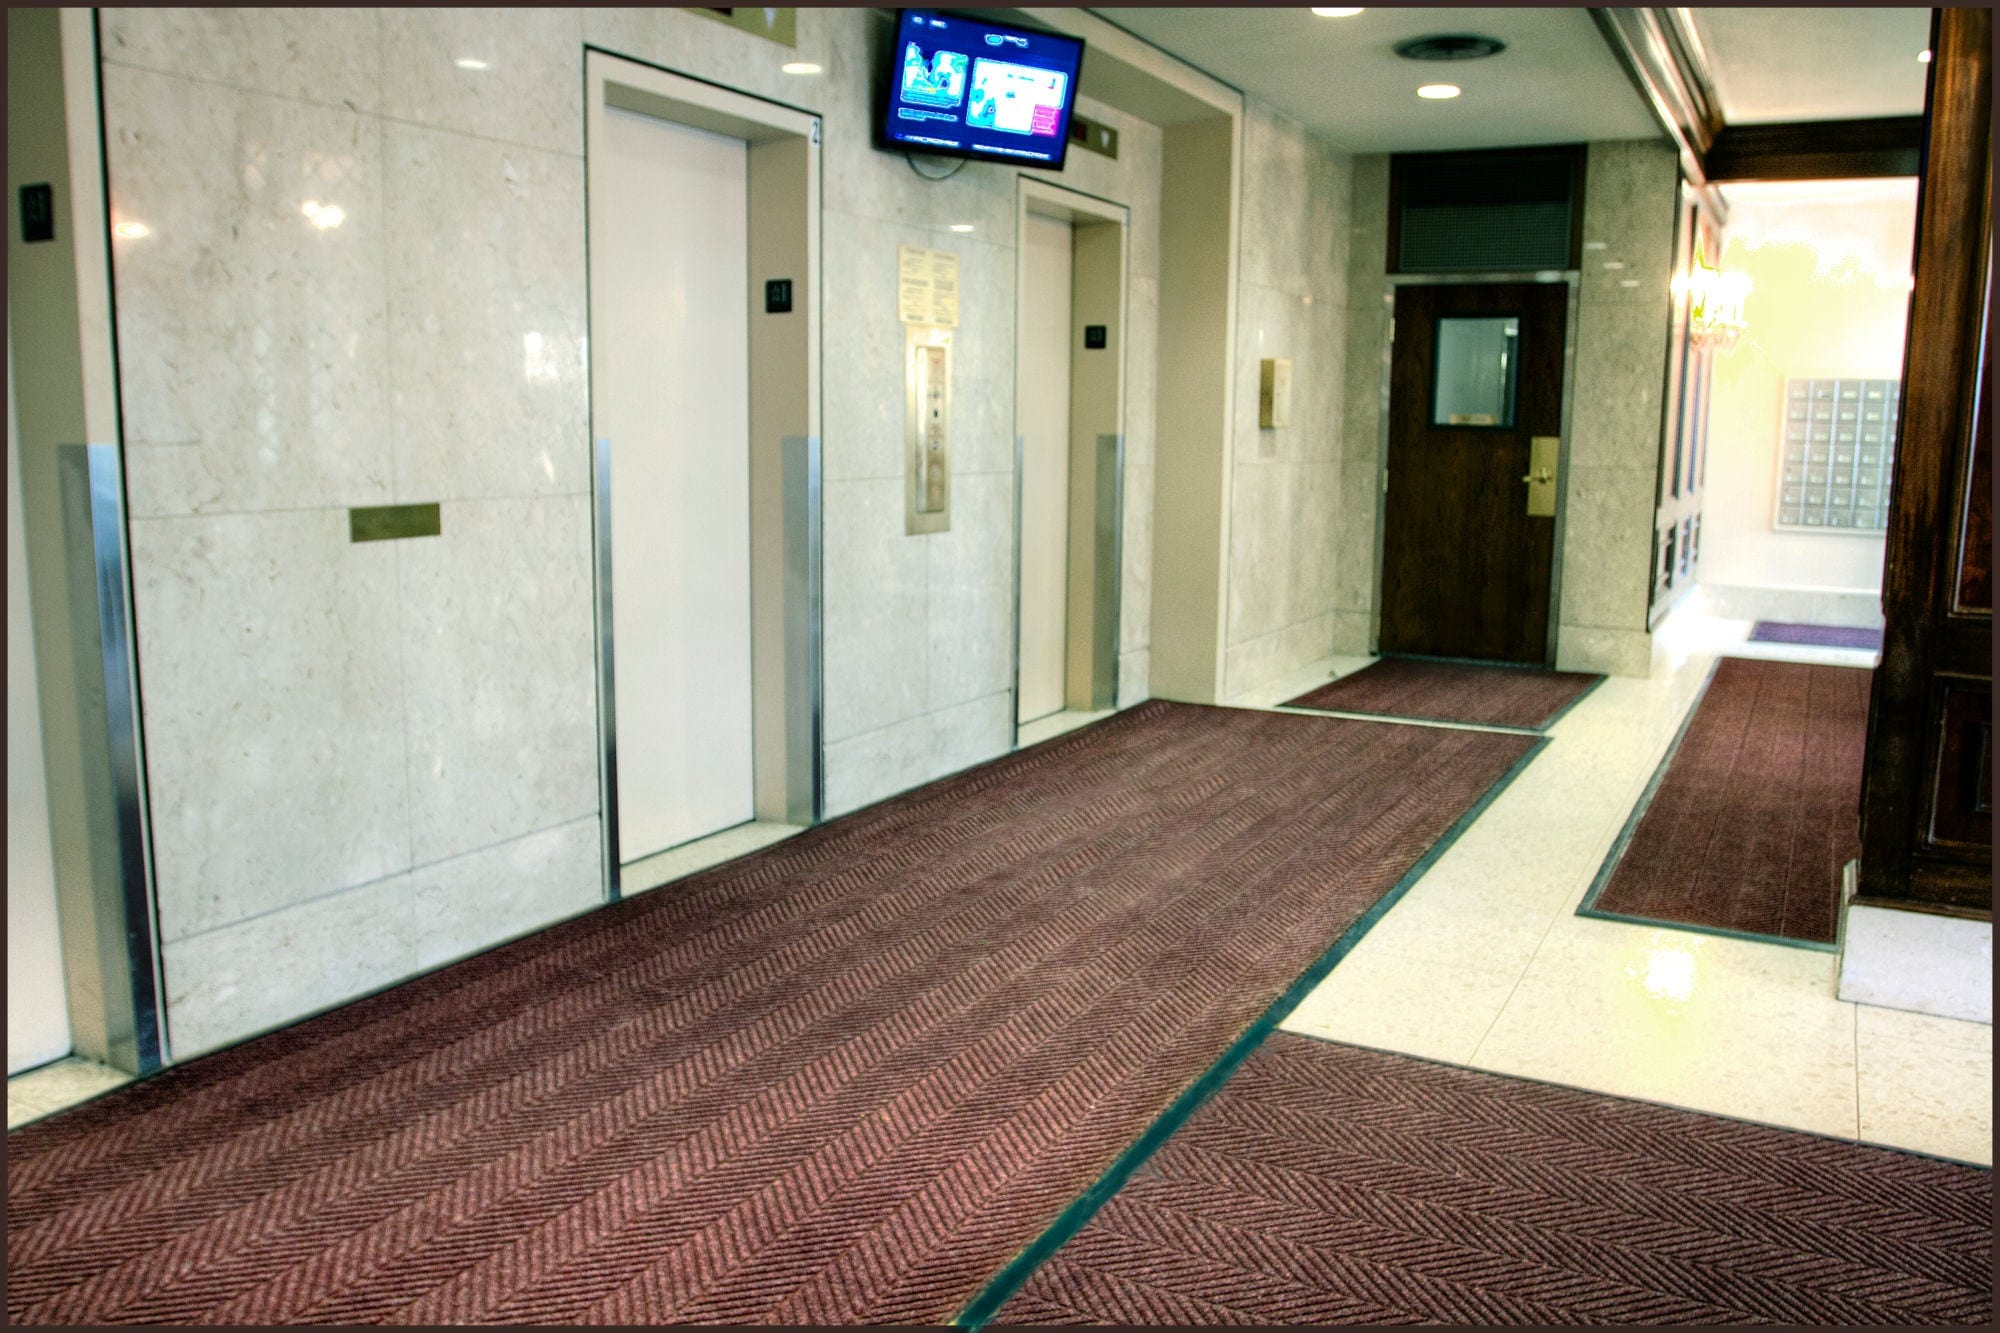 Entryway and elevators at Urbandale's The Watergate